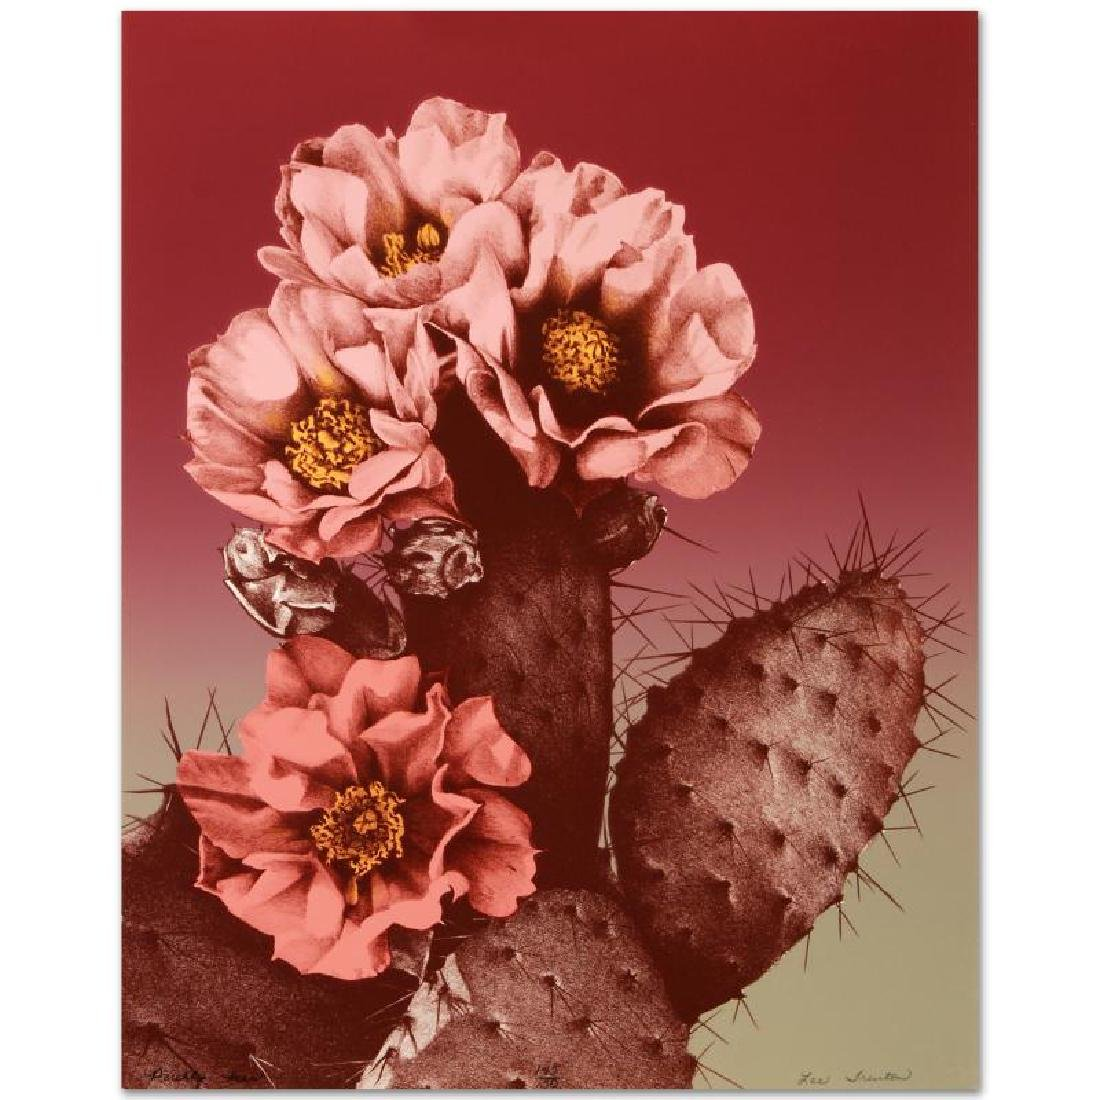 """Prickly Pear"" Limited Edition Lithograph by Lee"